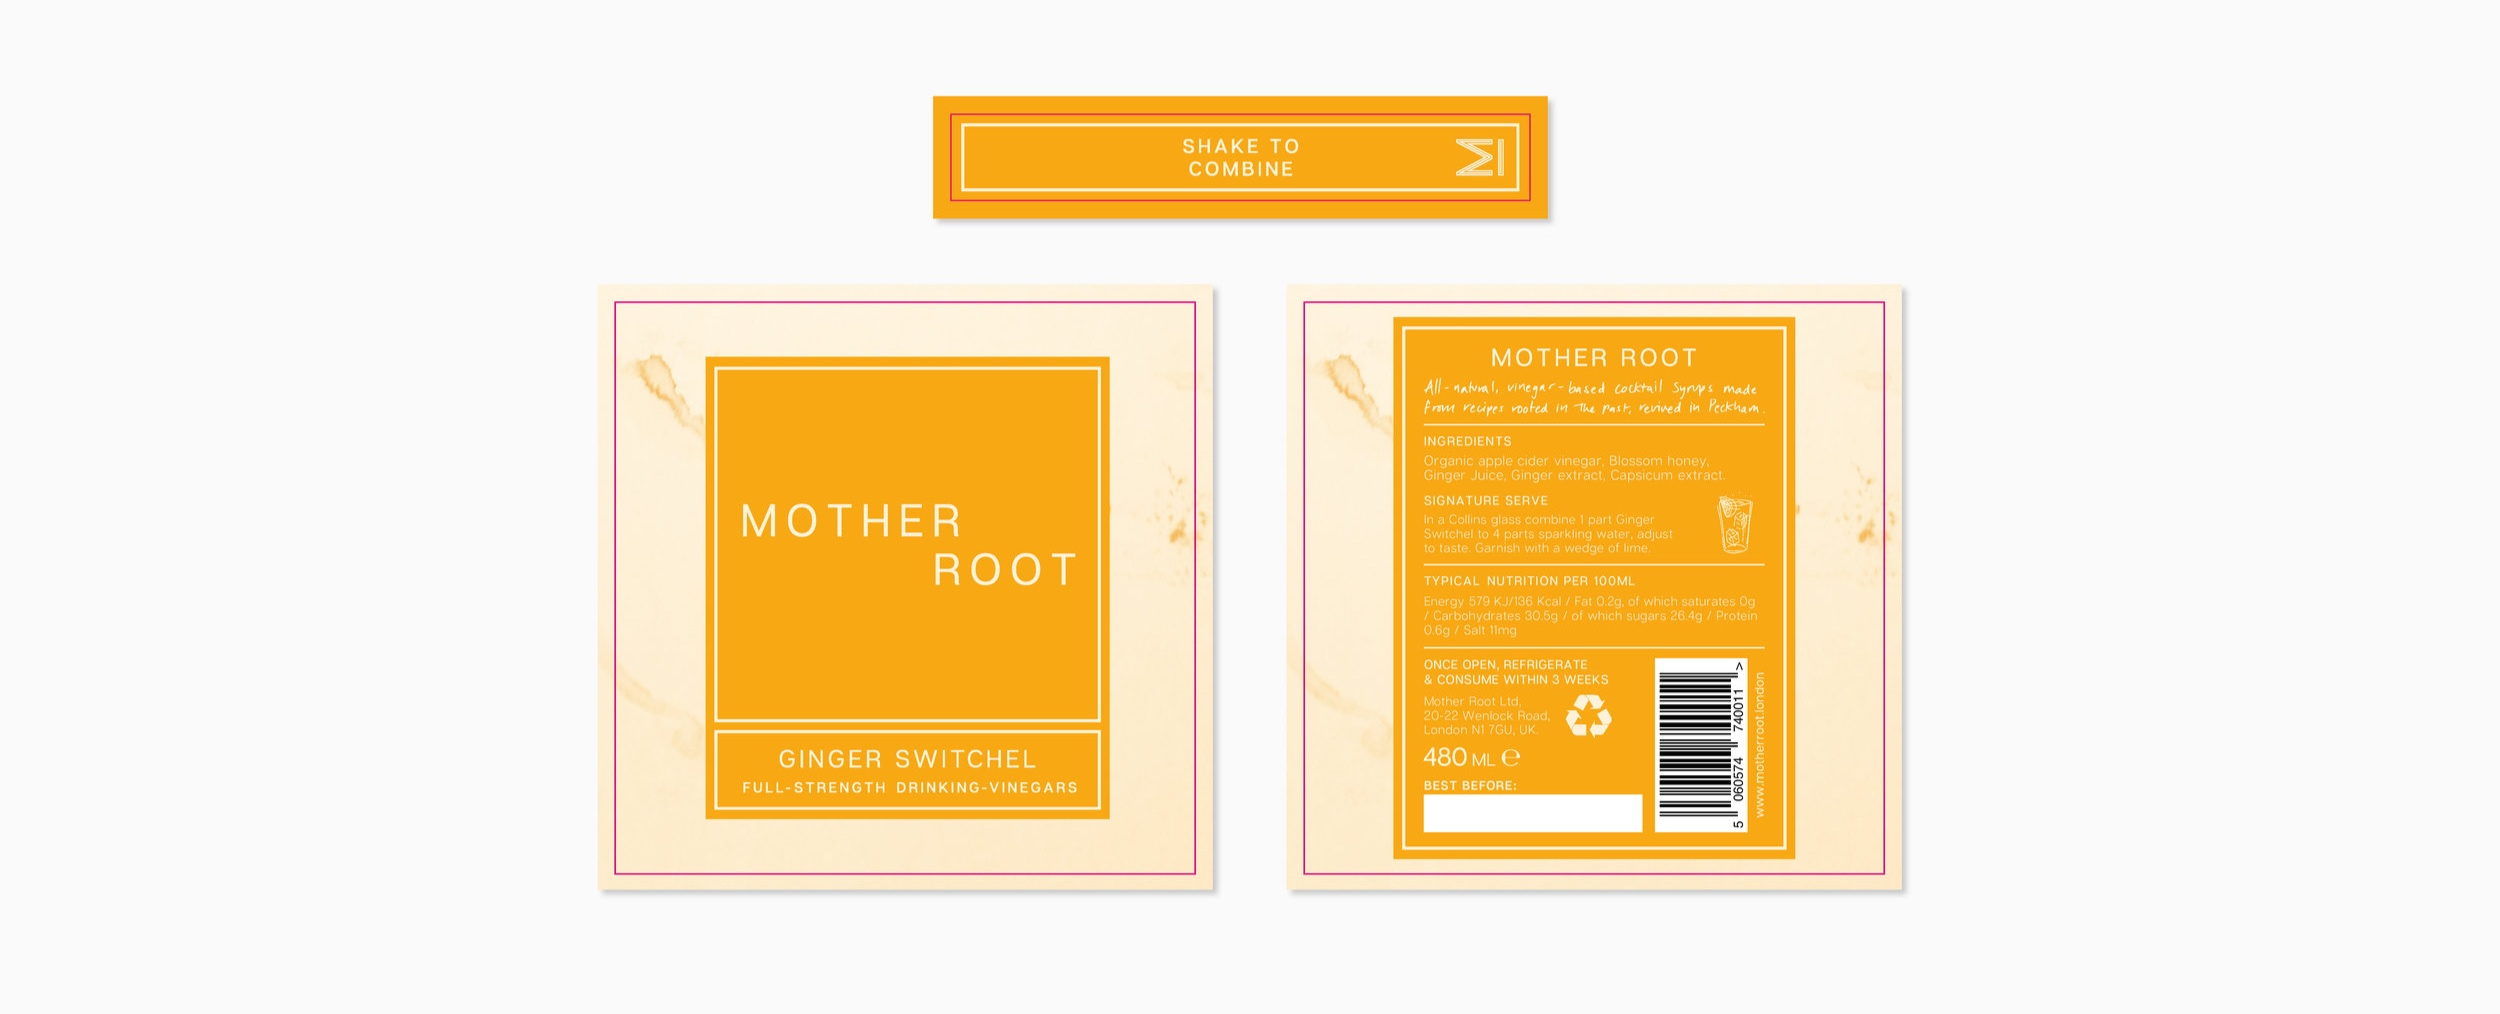 Mother-Root-Branding_Label-Design_Cocktails.jpg